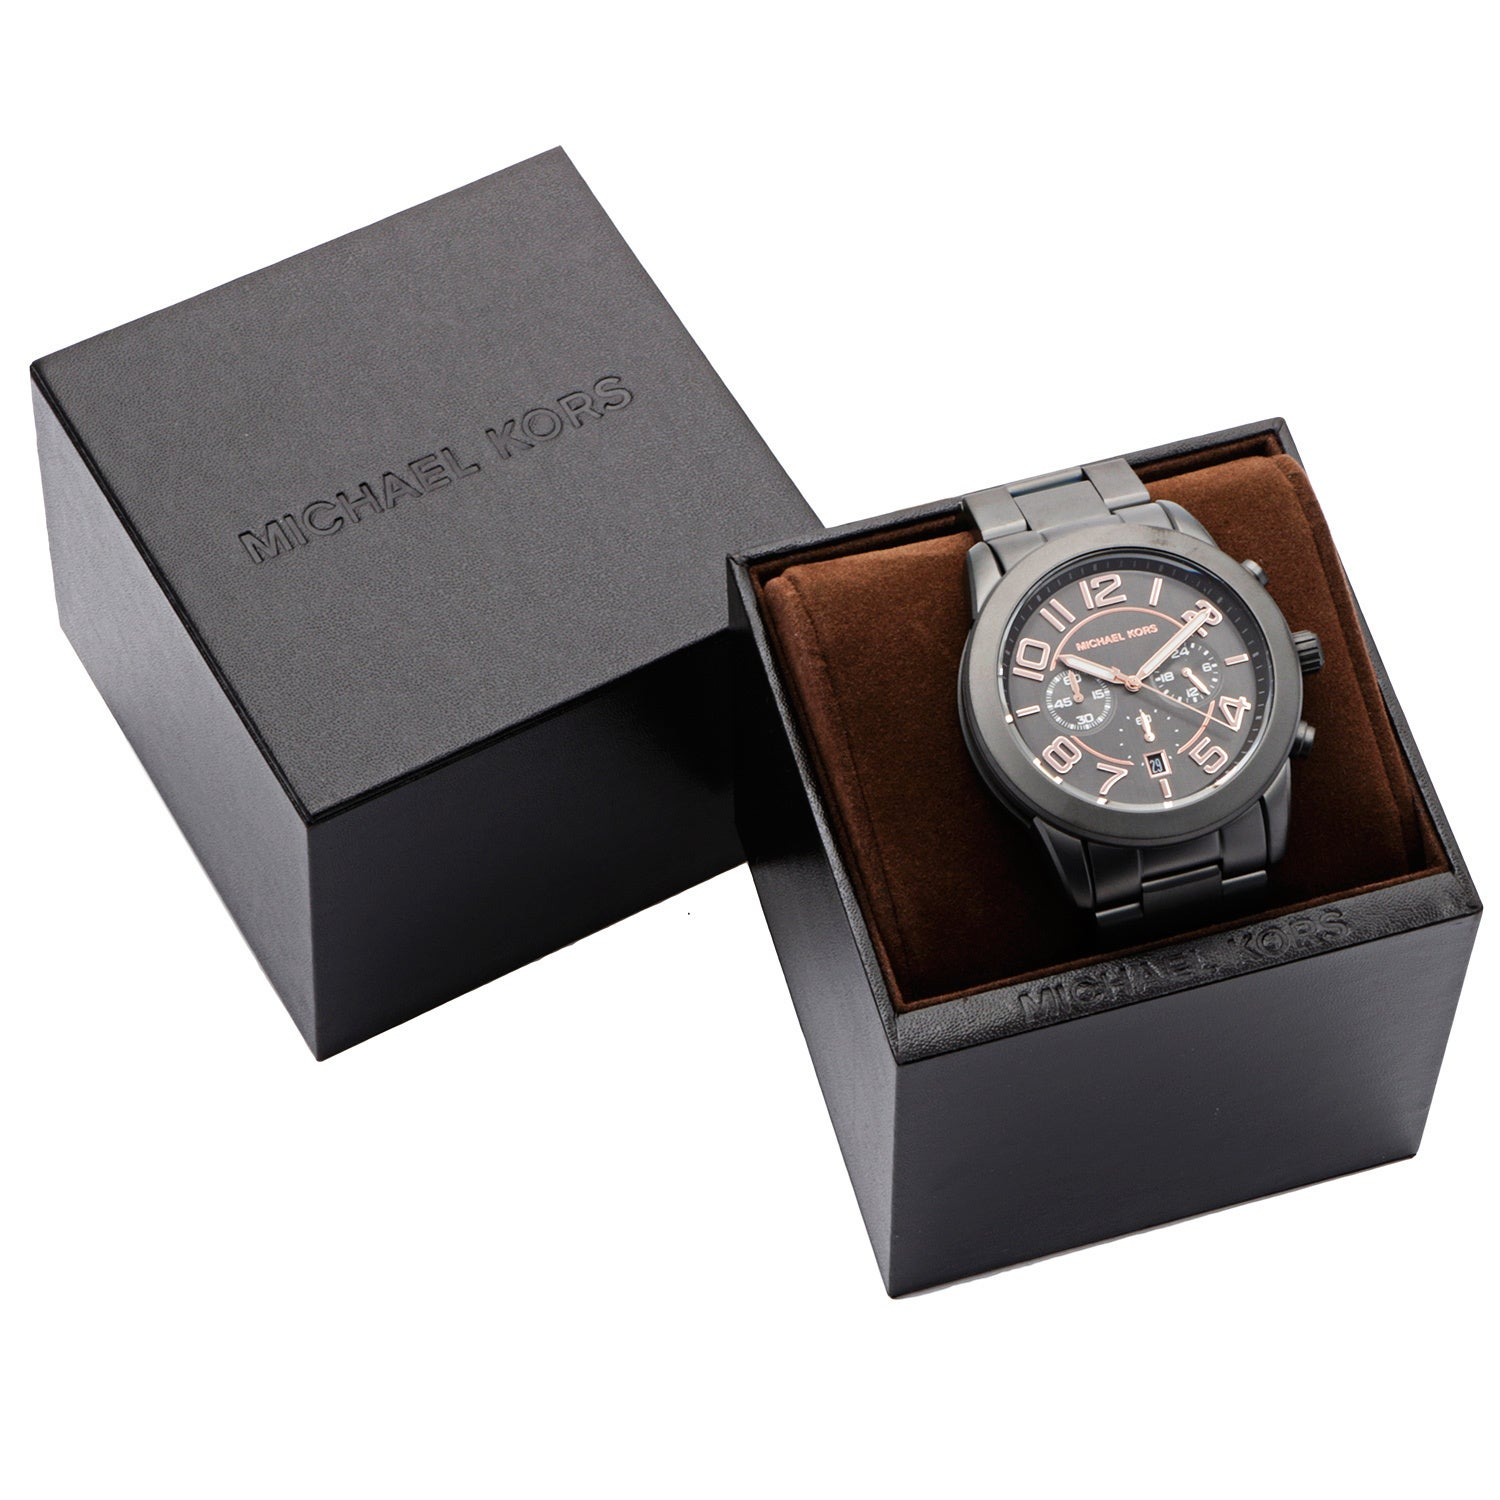 c21f76534ce8 Shop Michael Kors Men s  Mercer  Gunmetal Stainless Steel Chronograph Watch  - Free Shipping Today - Overstock - 8831600